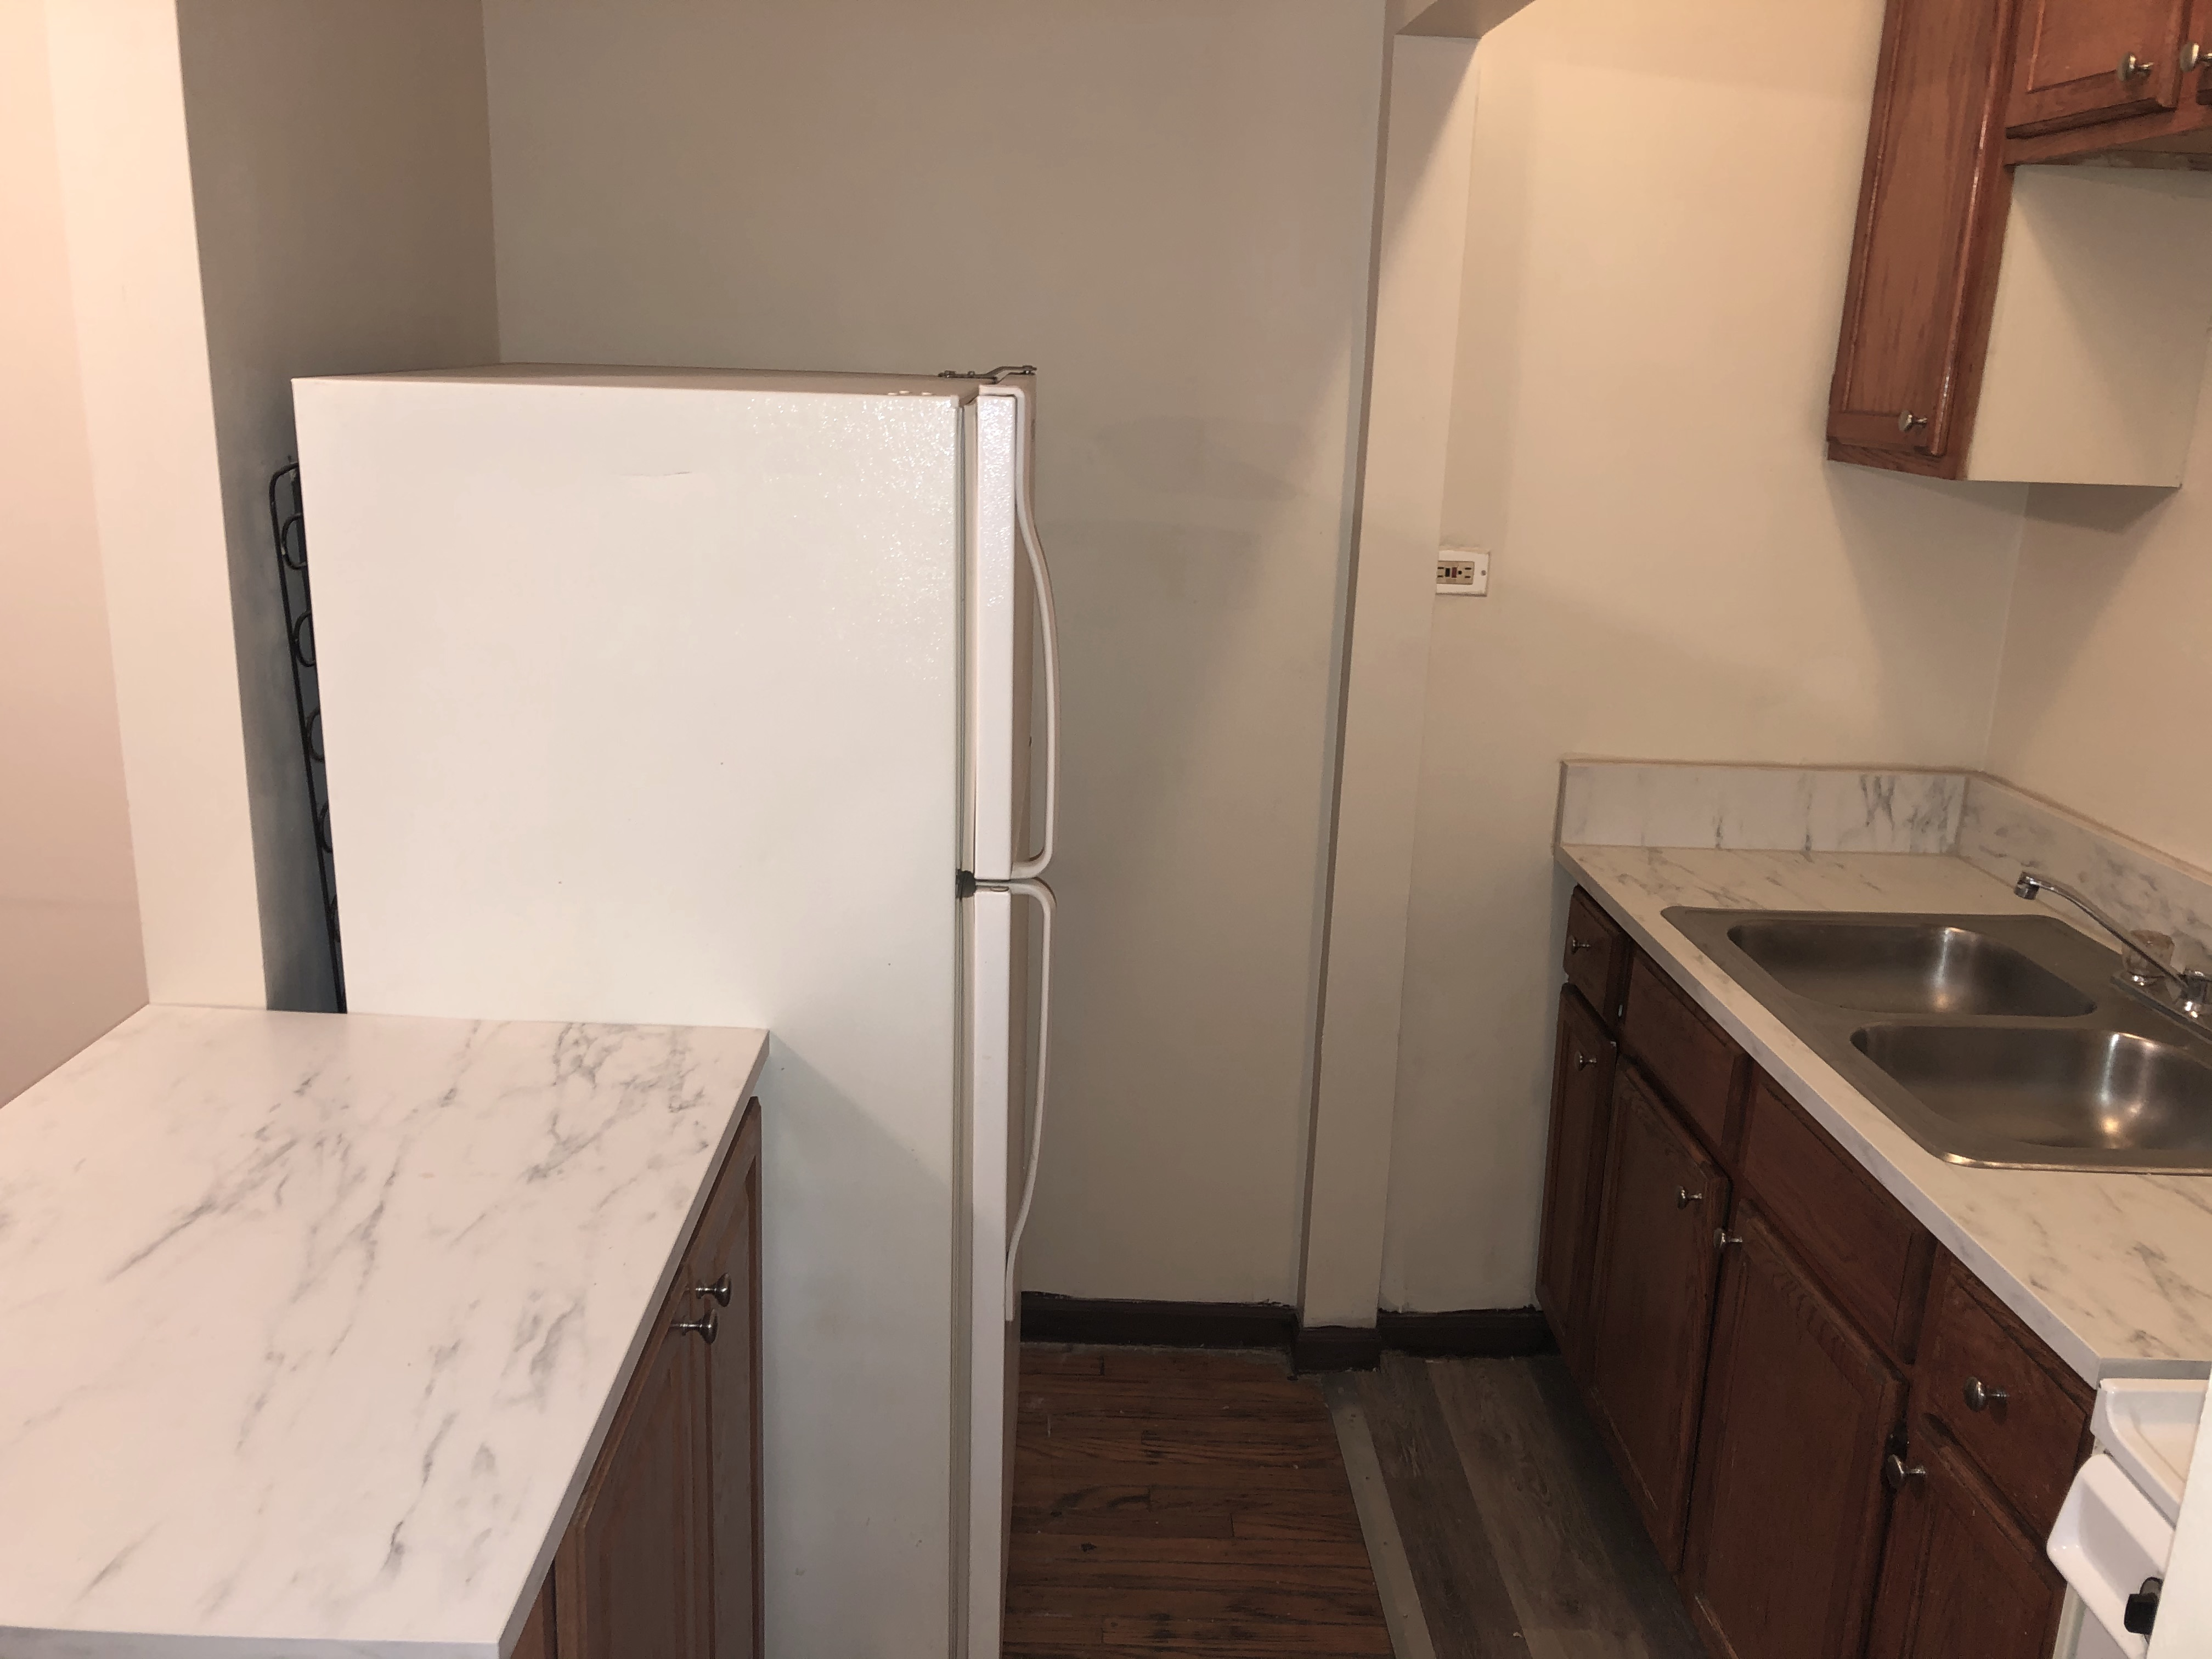 Pictures are of the actual apartment for rent. Truth!